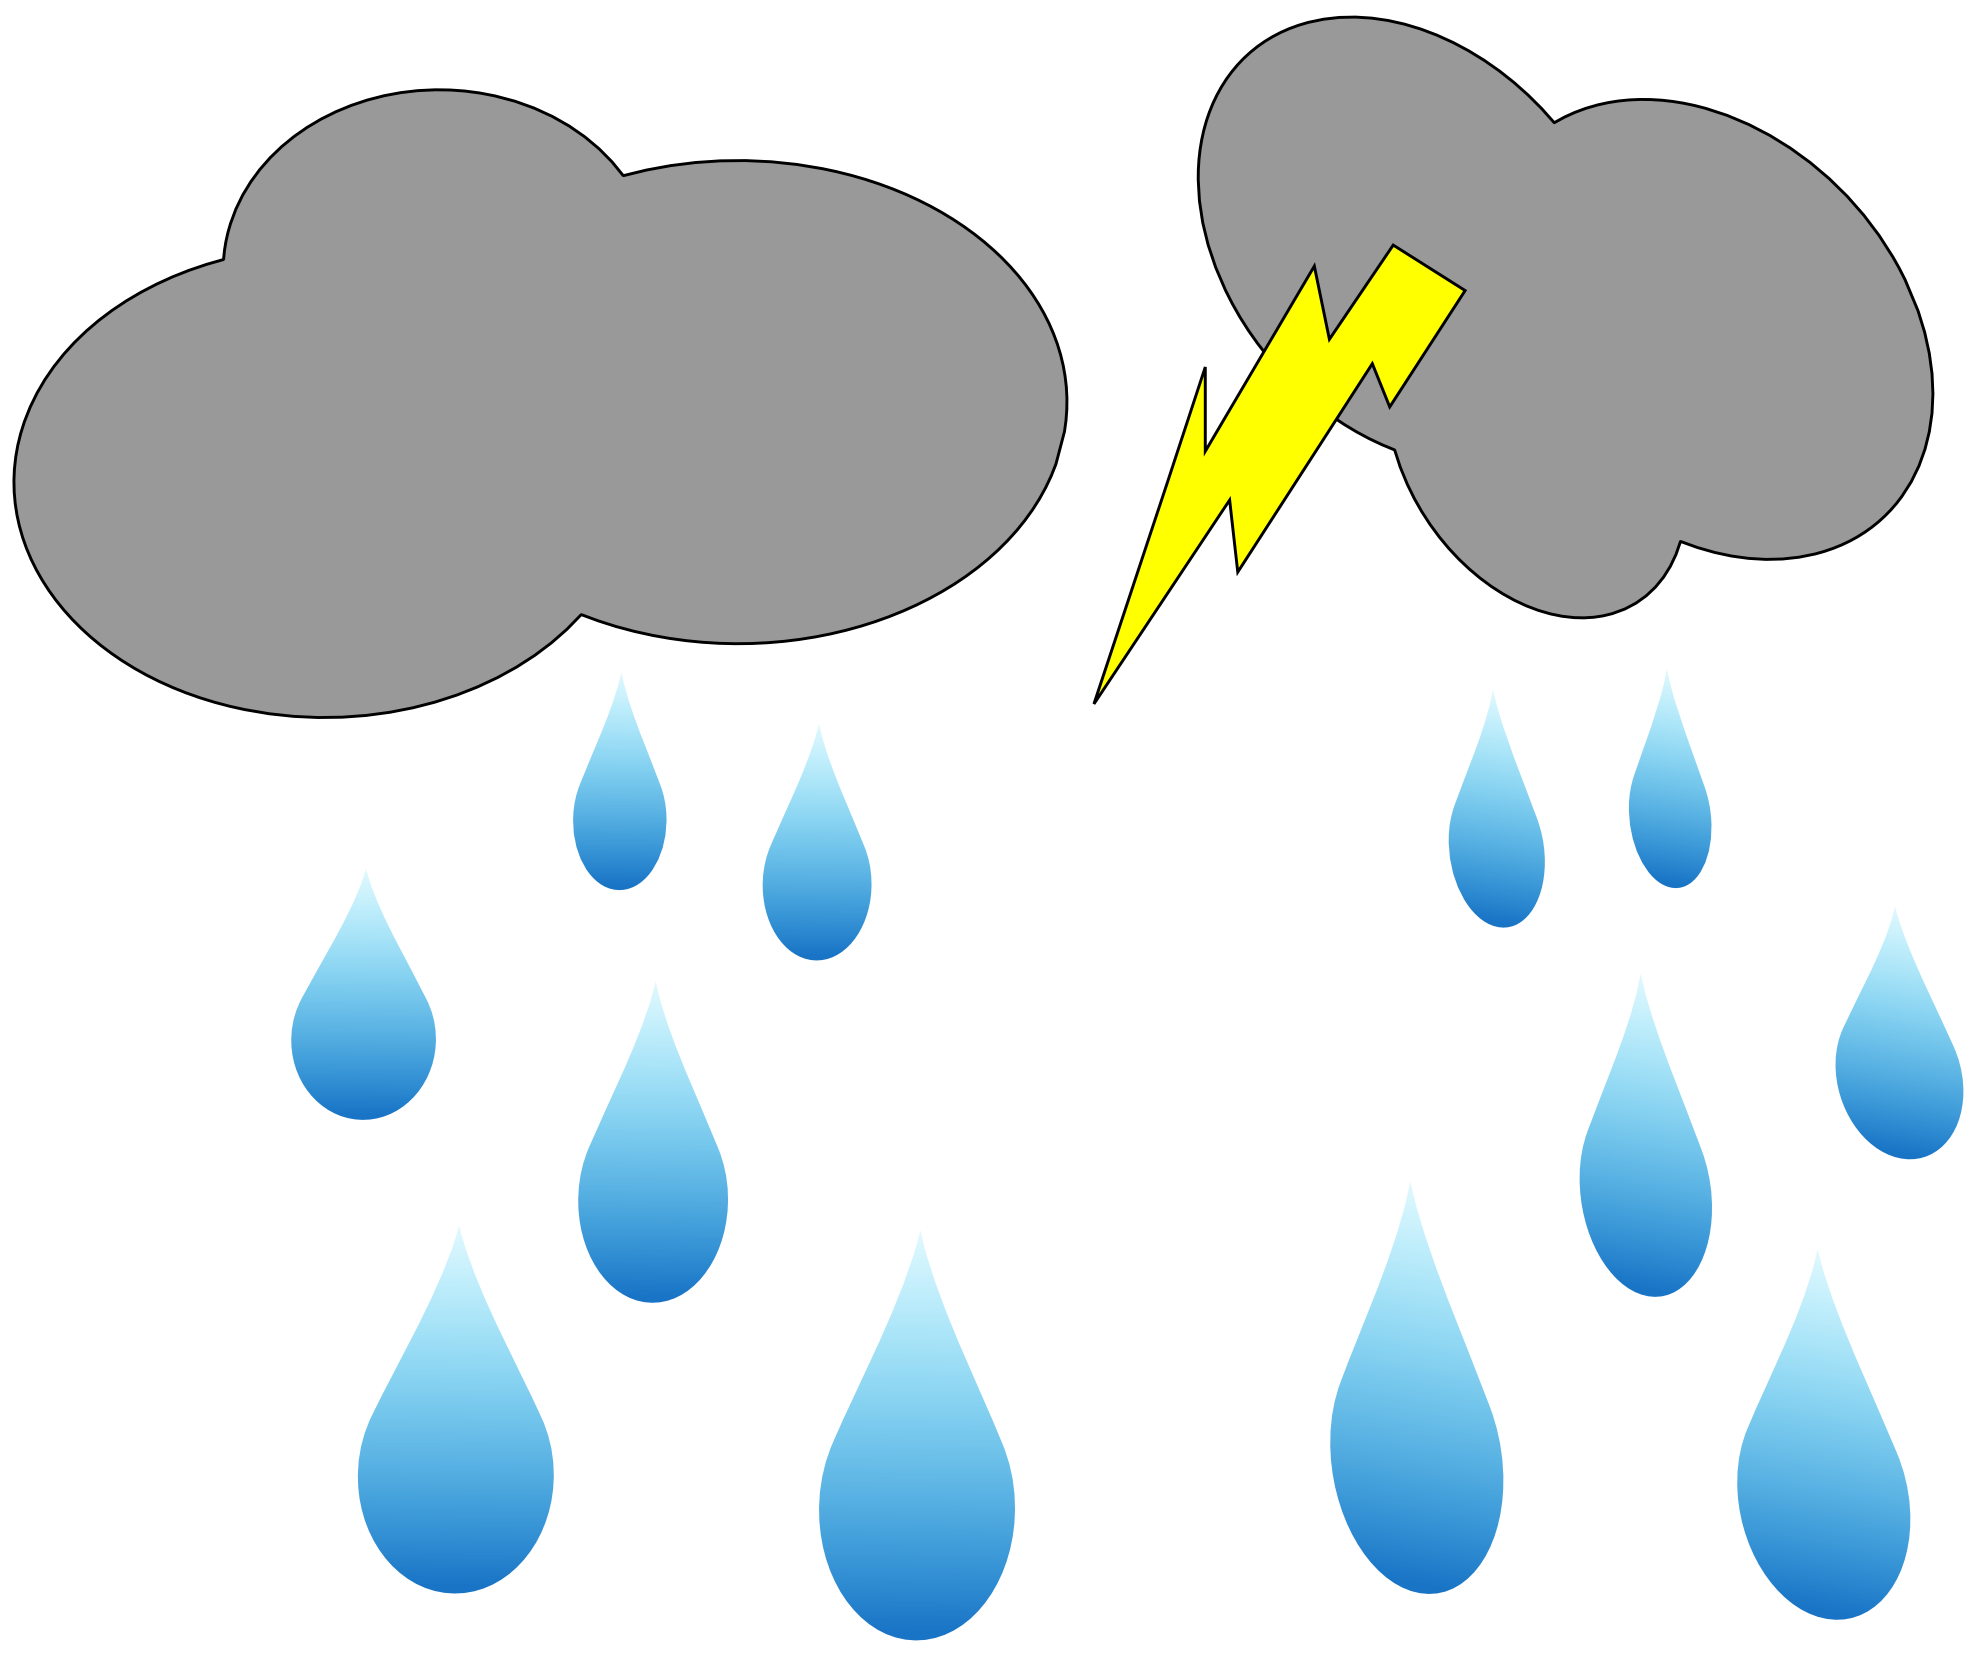 Rain Cloud Clip Art - Cliparts.co